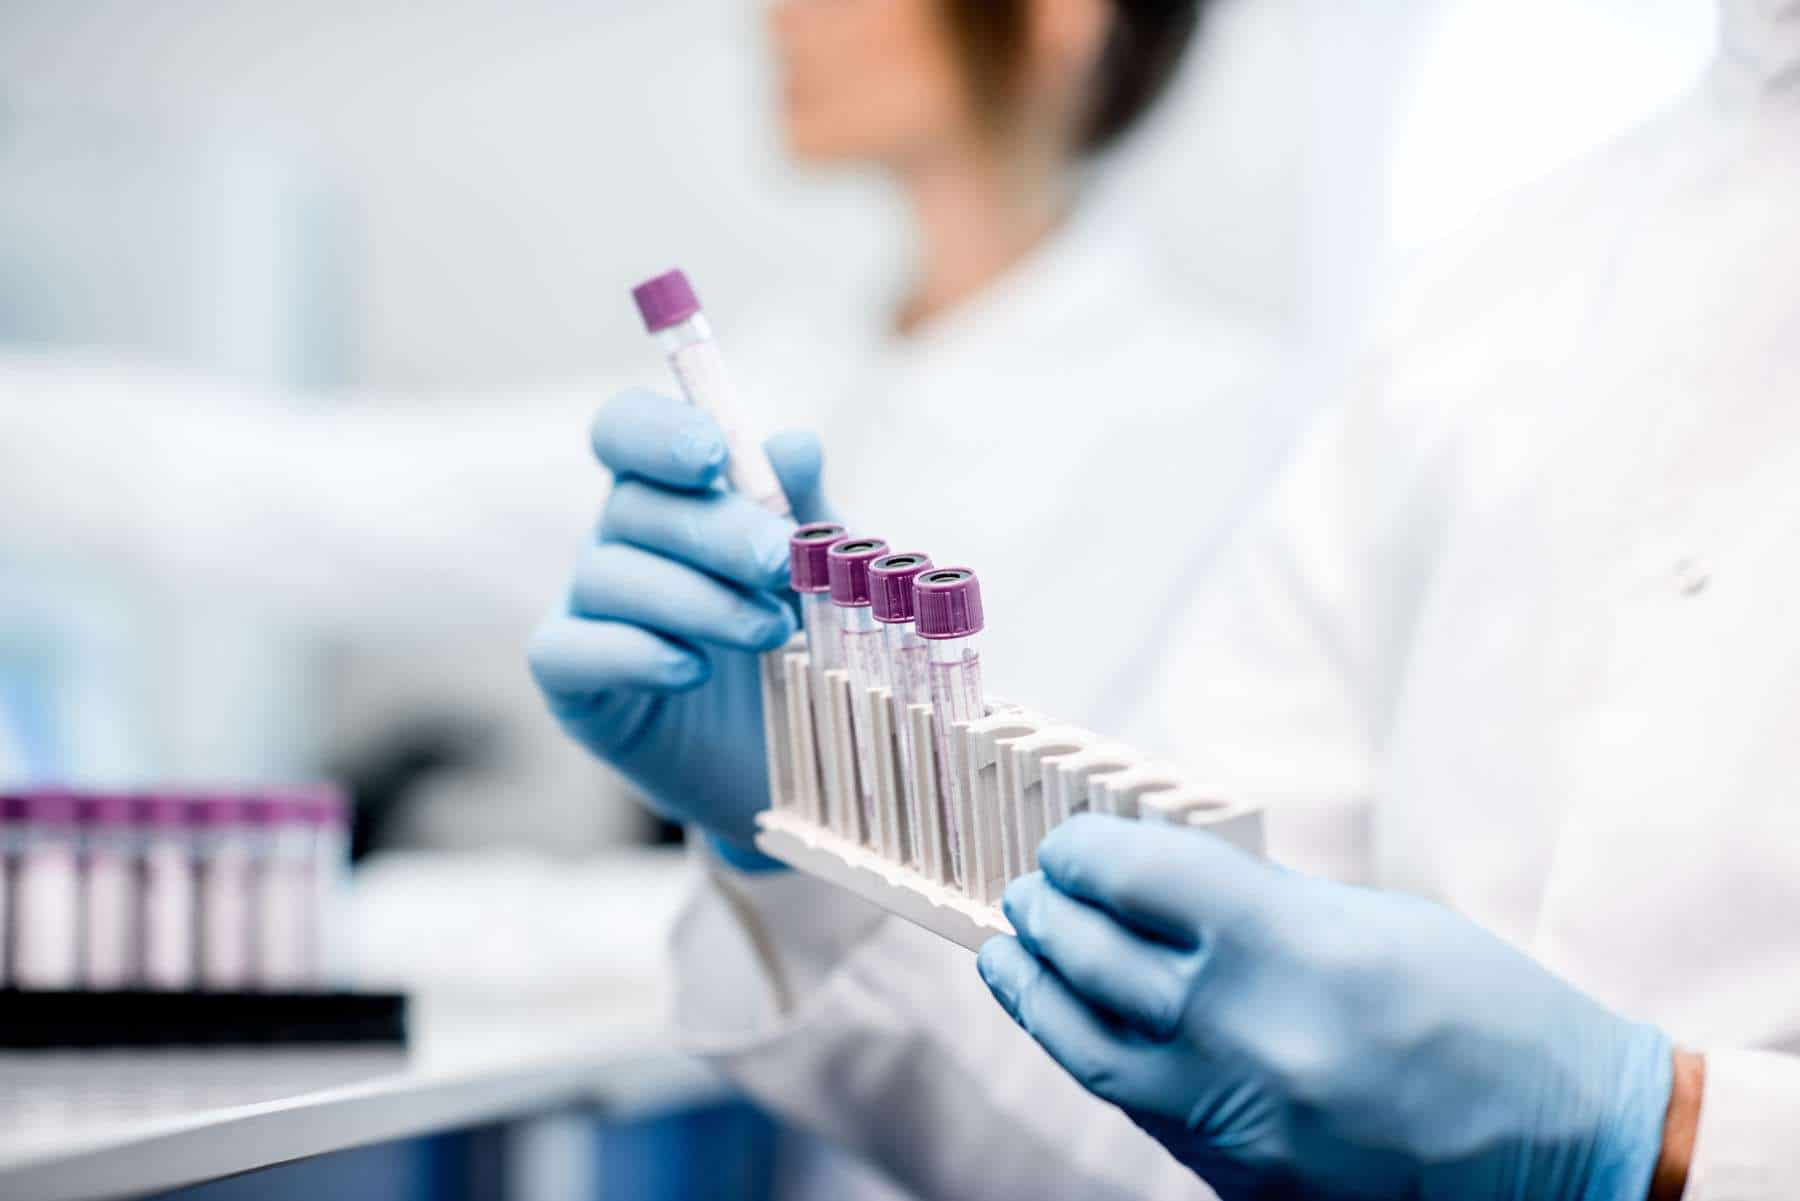 Test tubes being analysed in a forensic laboratory